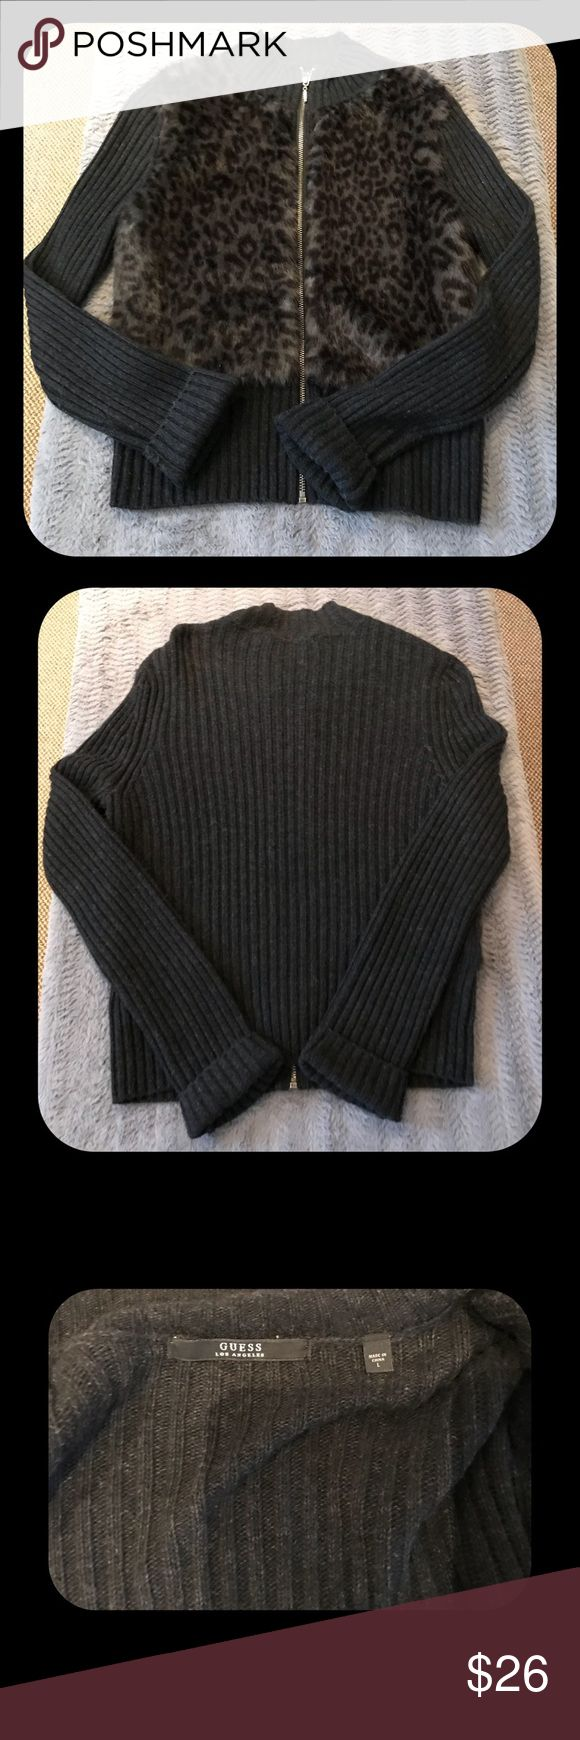 """GUESS Los Angeles Sweater sz  L Faux fur Guess sweater jacket.  Soft animal print black/grey faux fur front. Length approx 24"""" across chest approx 19"""".  Across back shoulder approx 15"""". Previously Worn condition...only a few times. Guess Jackets & Coats"""